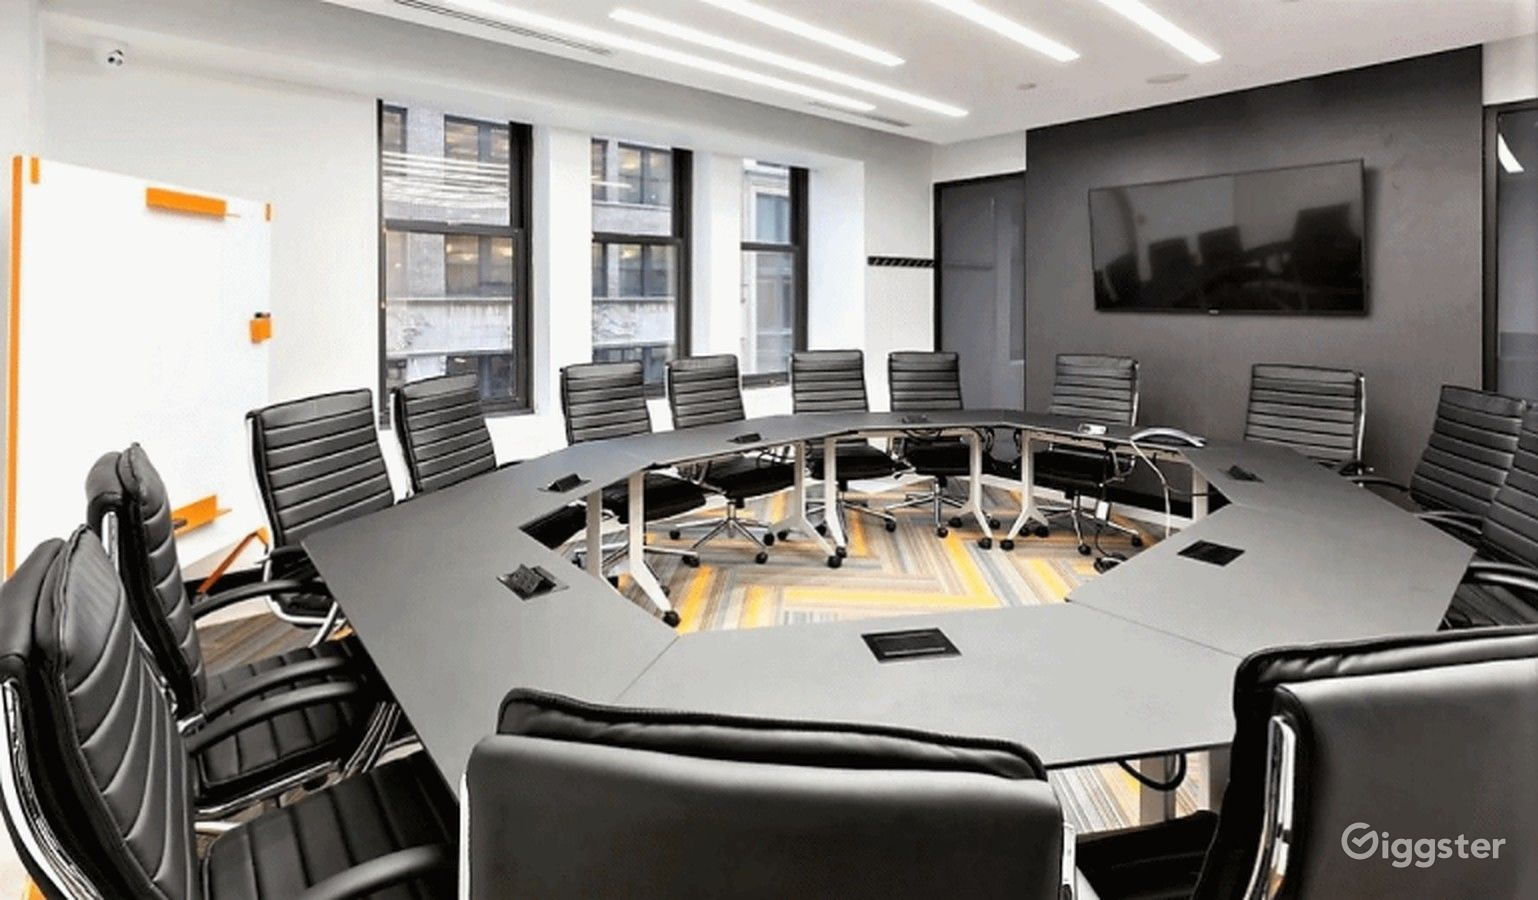 Fifth Avenue Confrence Room Rent This Location On Giggster